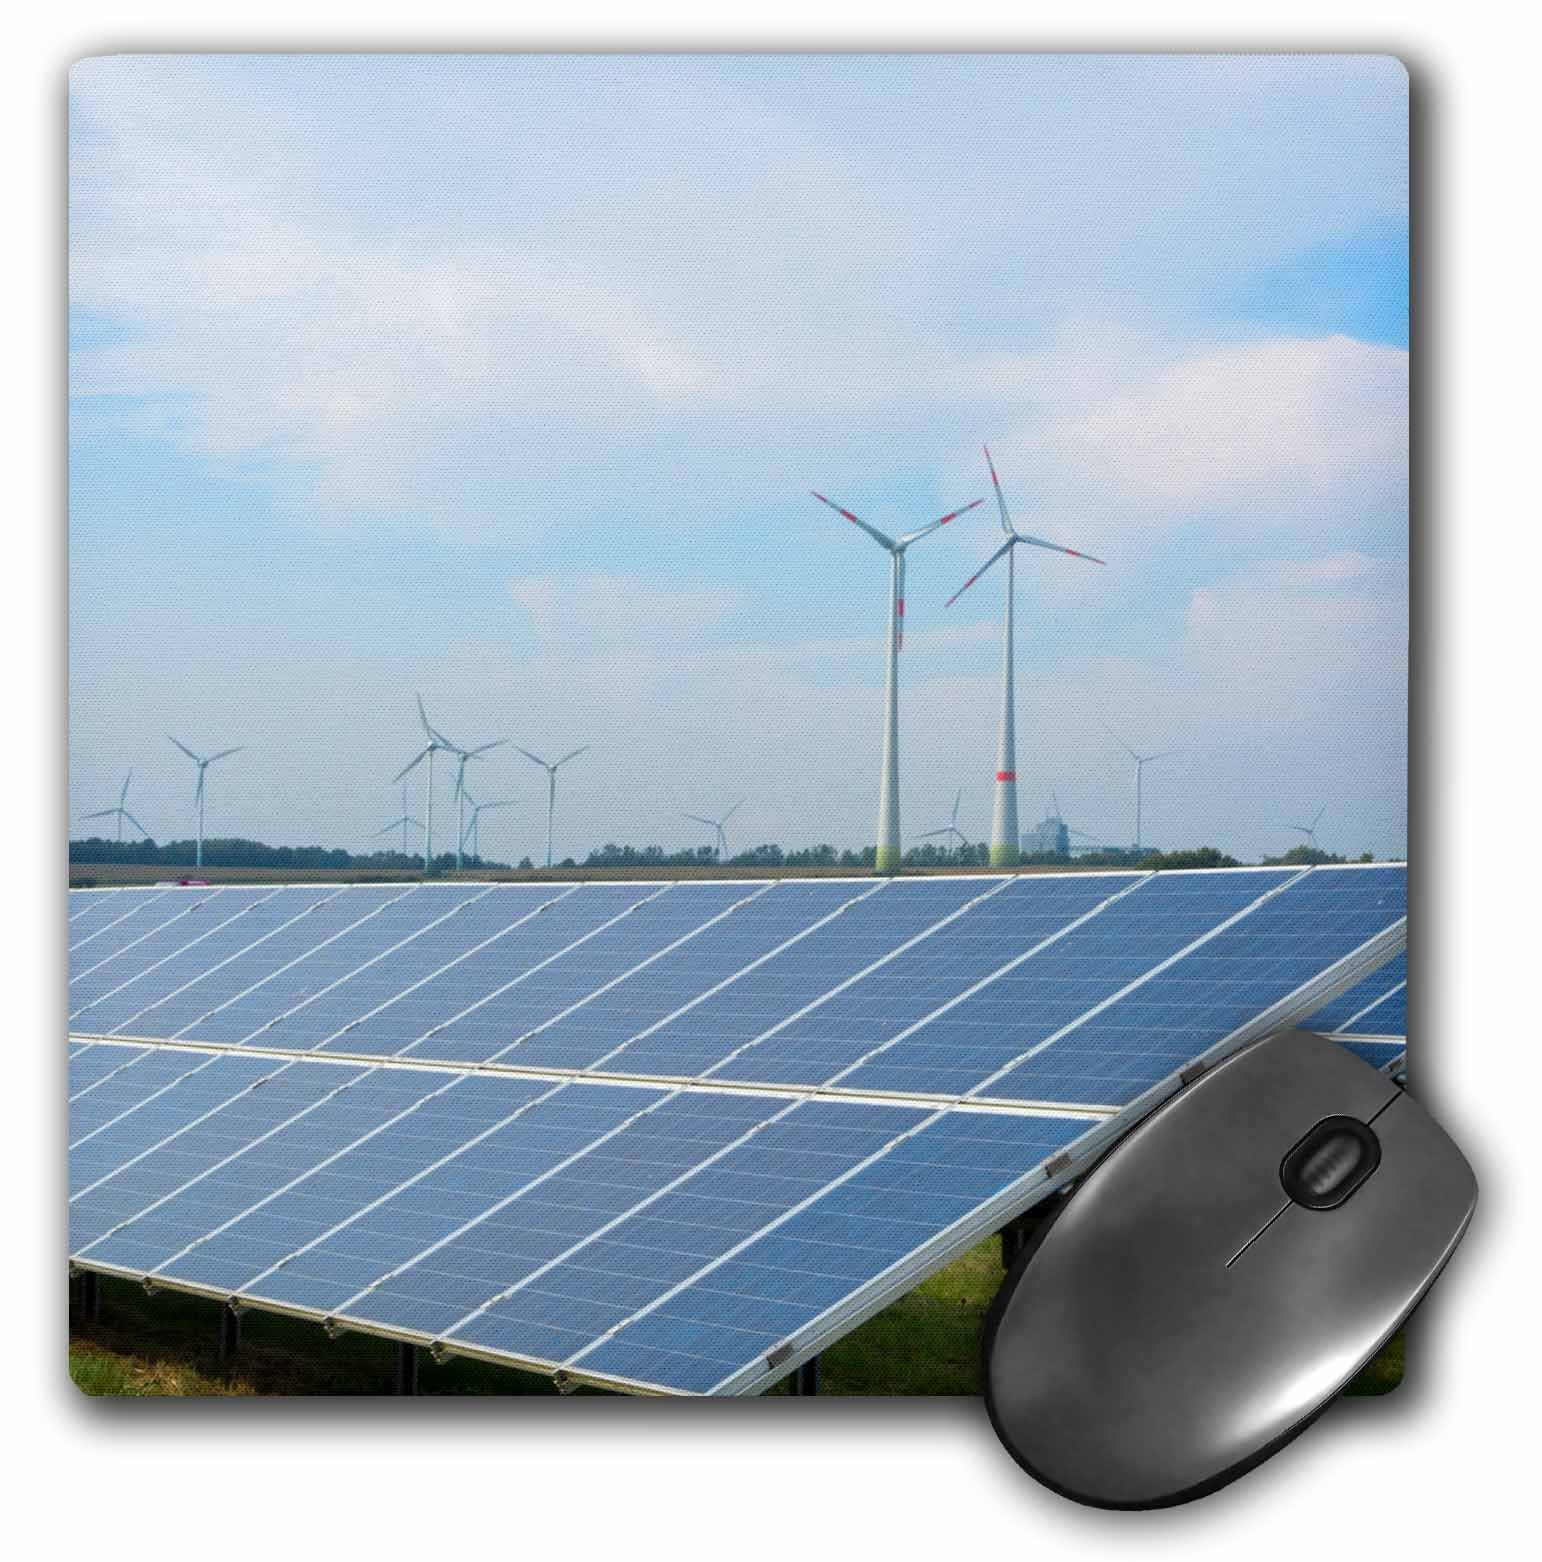 3D Rose Germany Wind Energy Turbines And Solar Panels In Field Hamburg Matte Finish Mouse Pad - 8 x 8 - mp_227343_1